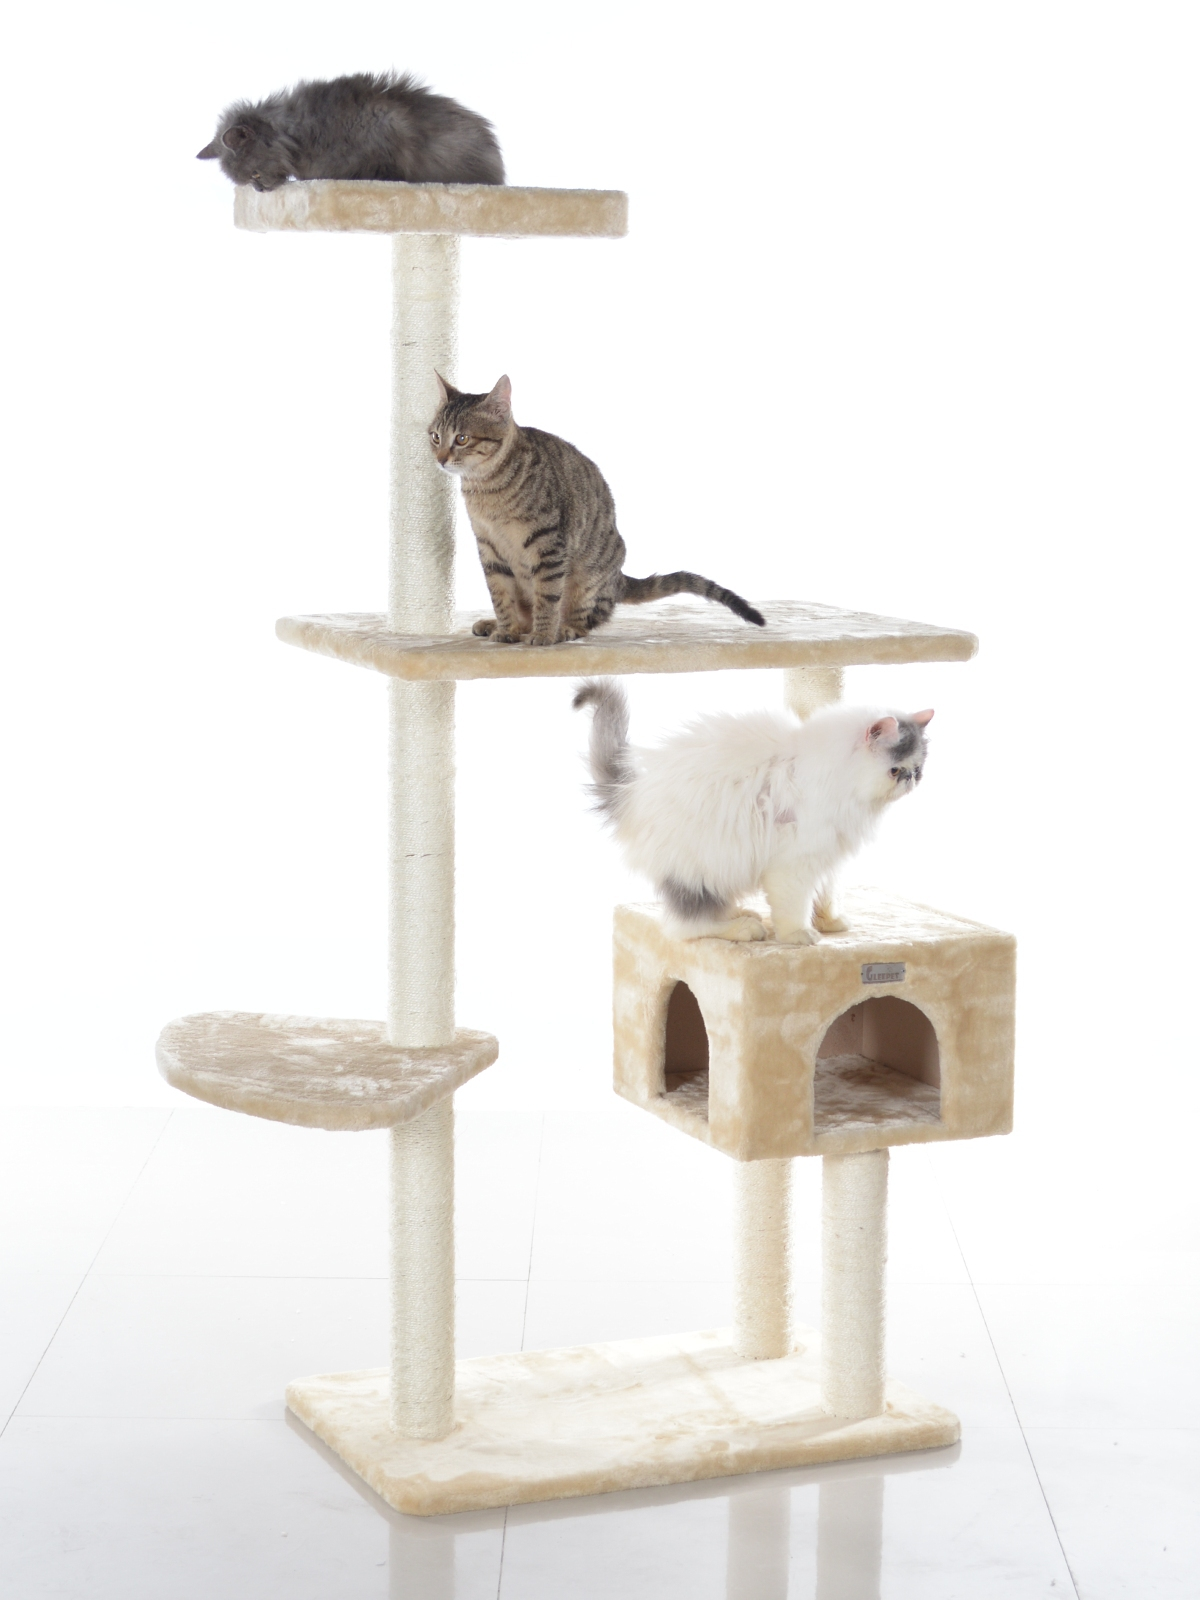 Cat Furniture For Sale Cat Furniture Discount Cat Furniture Medium Cat Condo